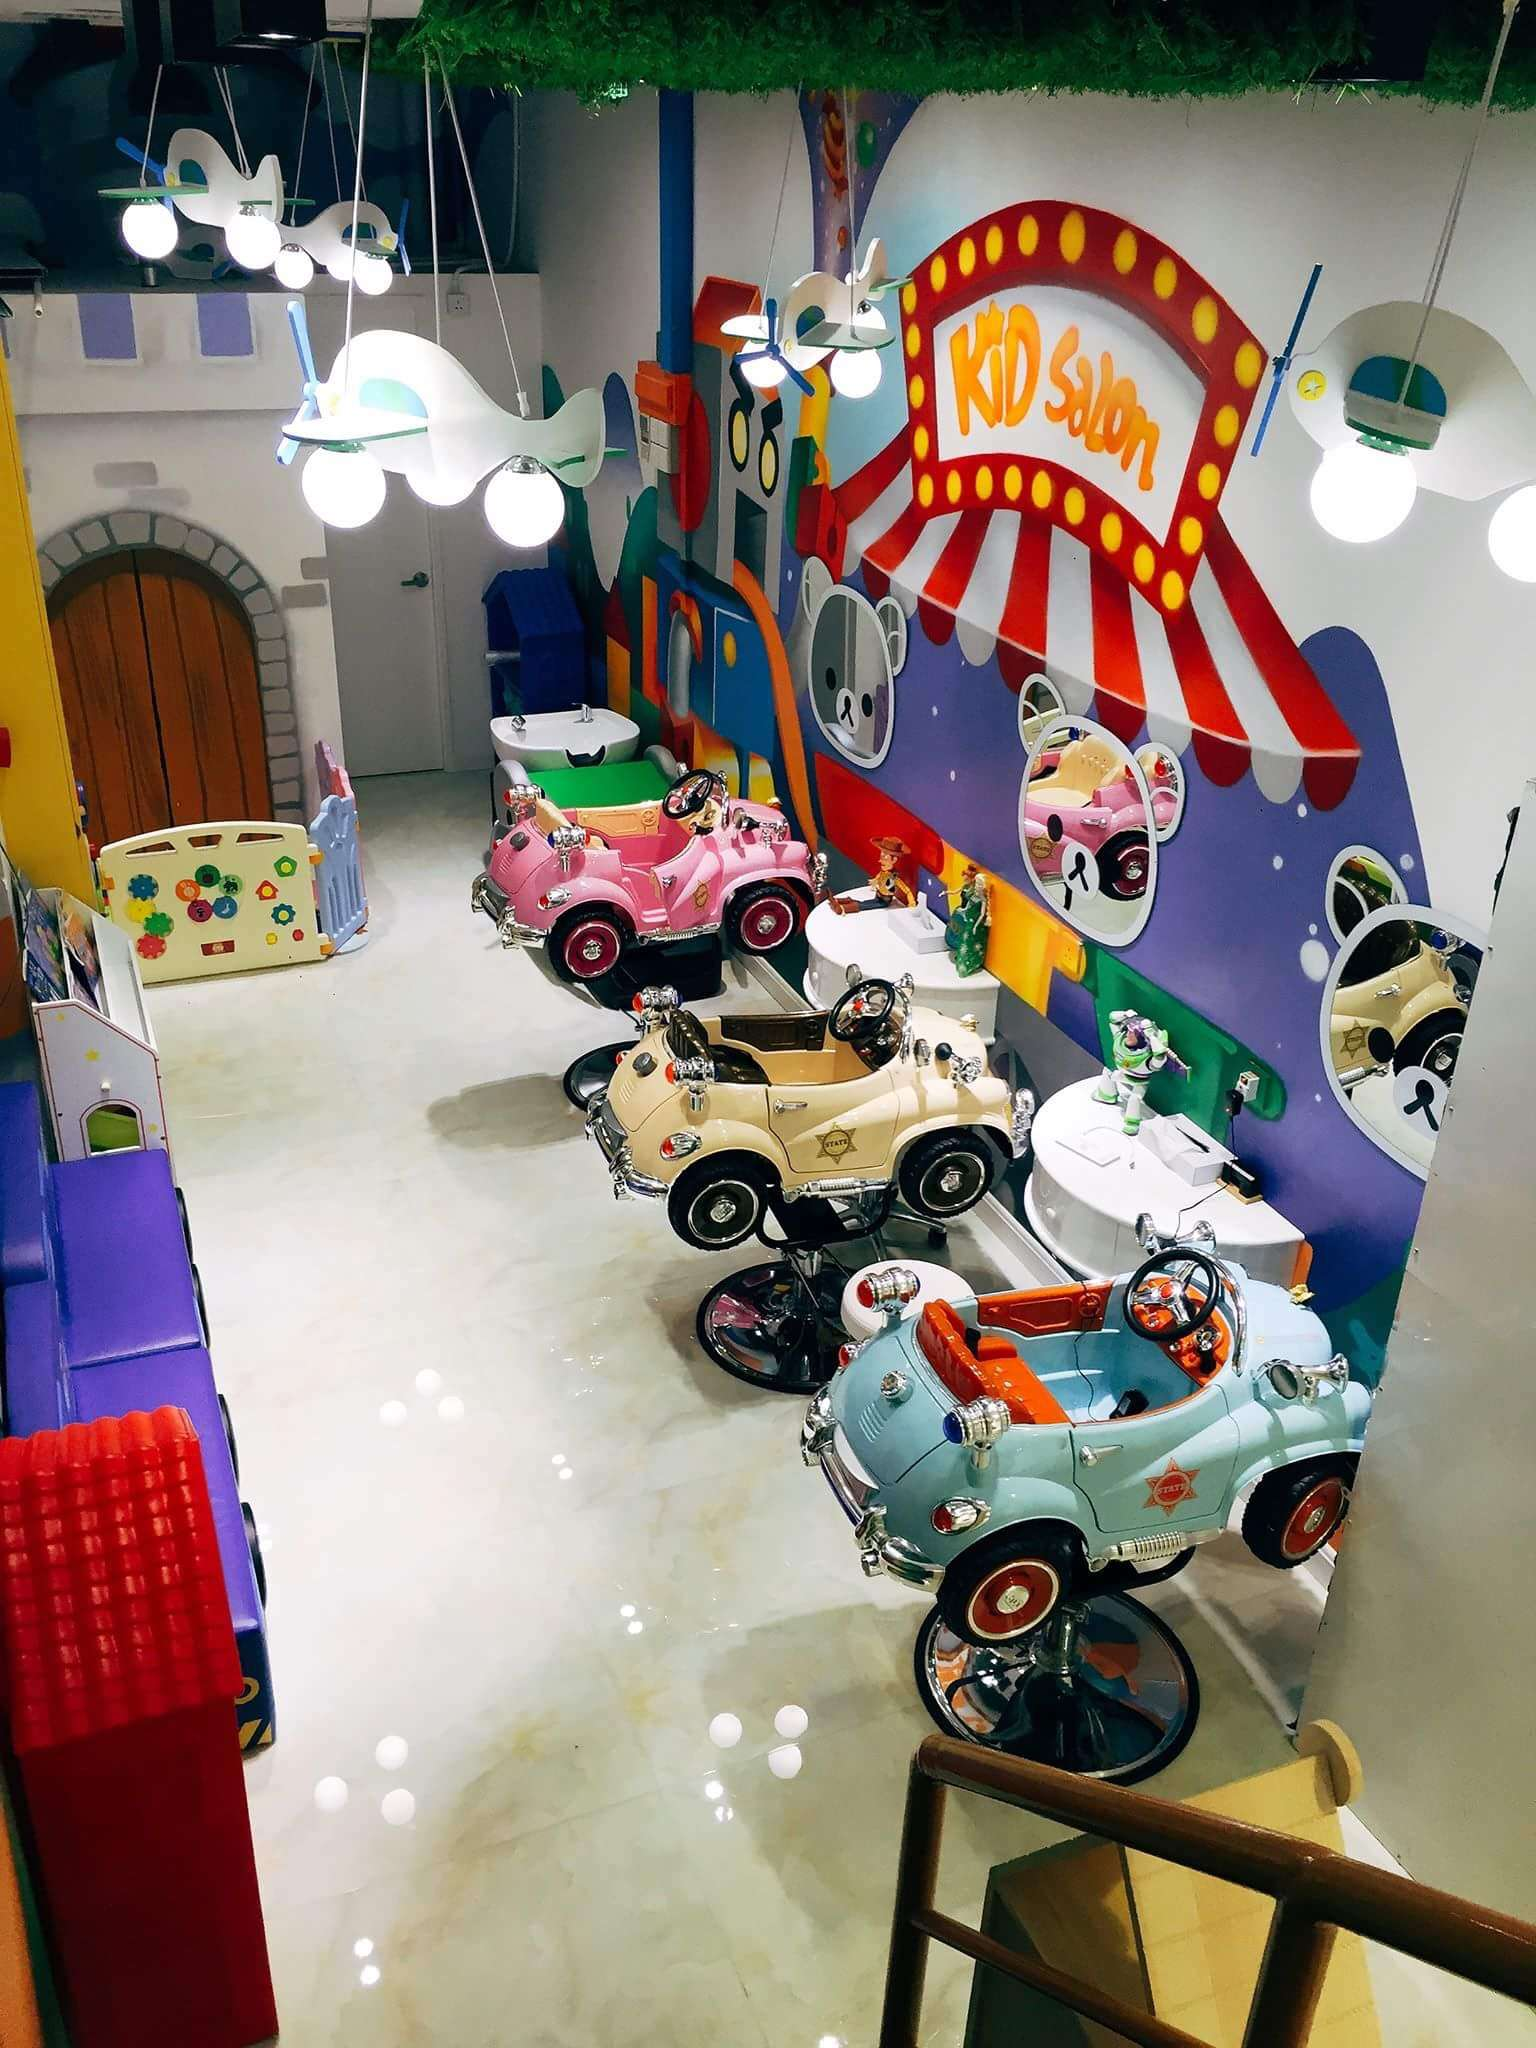 Hair salon for kids with toy cars for chairs